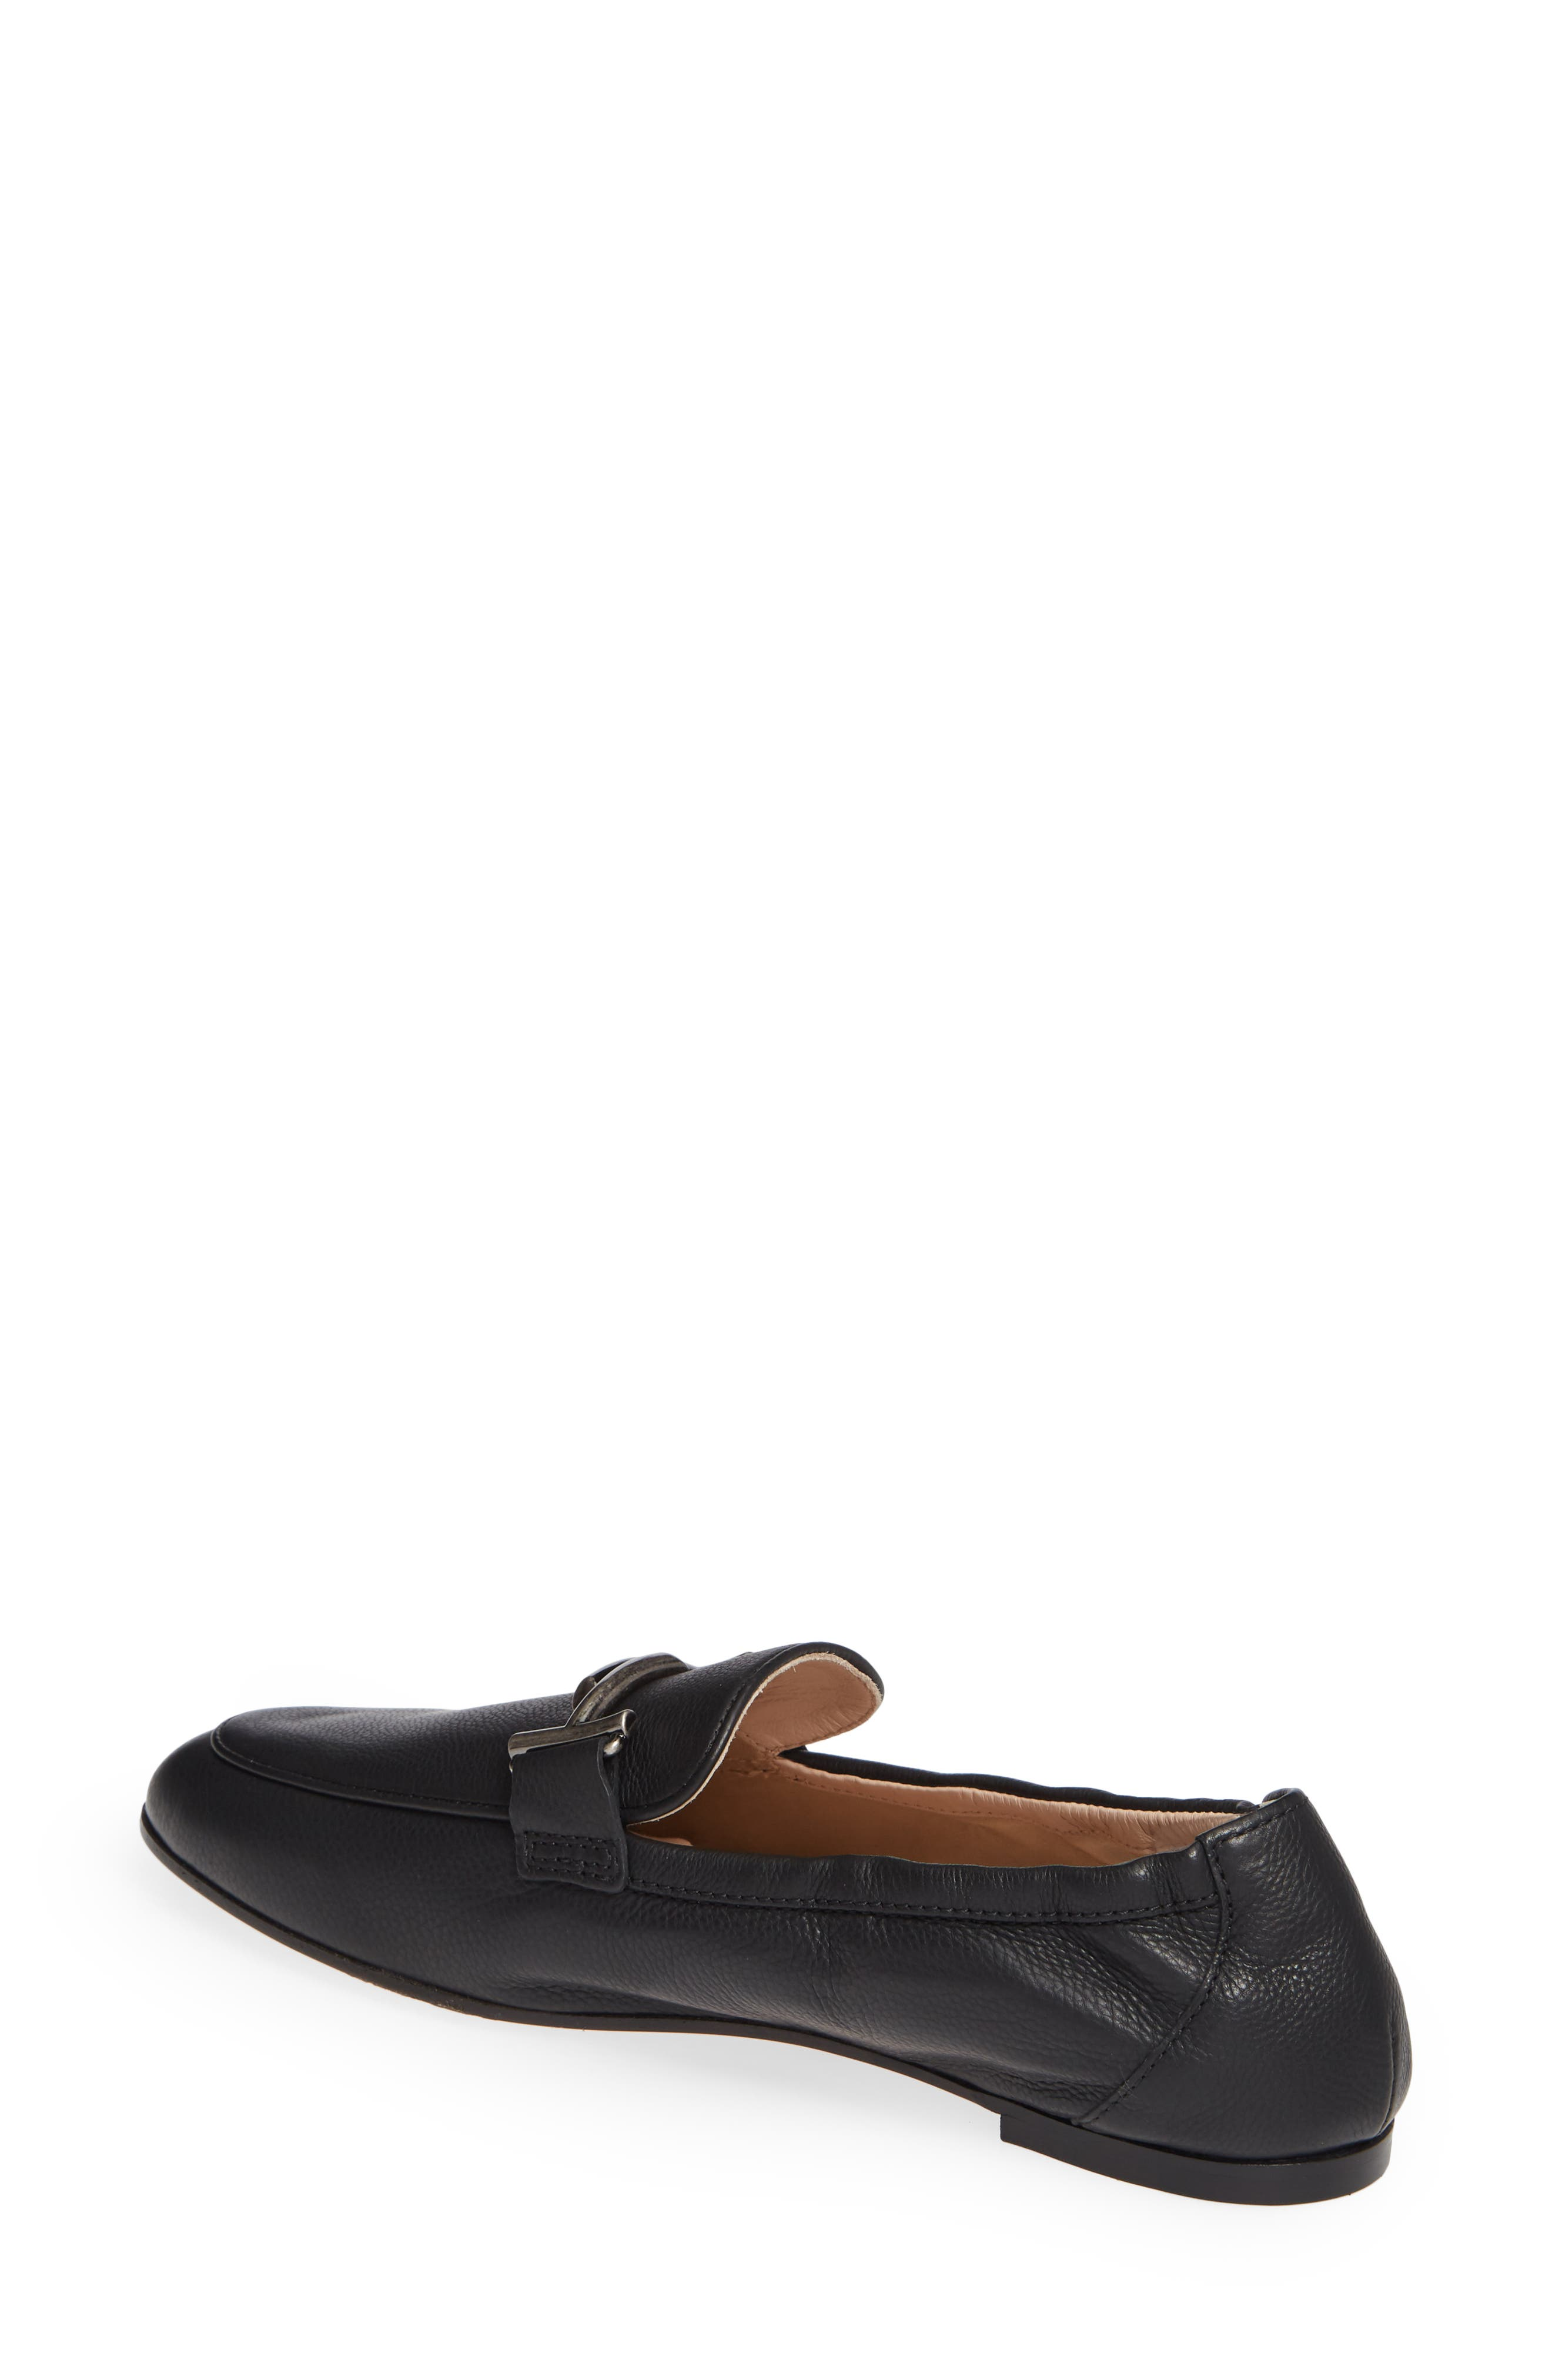 Double T Loafer,                             Alternate thumbnail 2, color,                             BLACK LEATHER